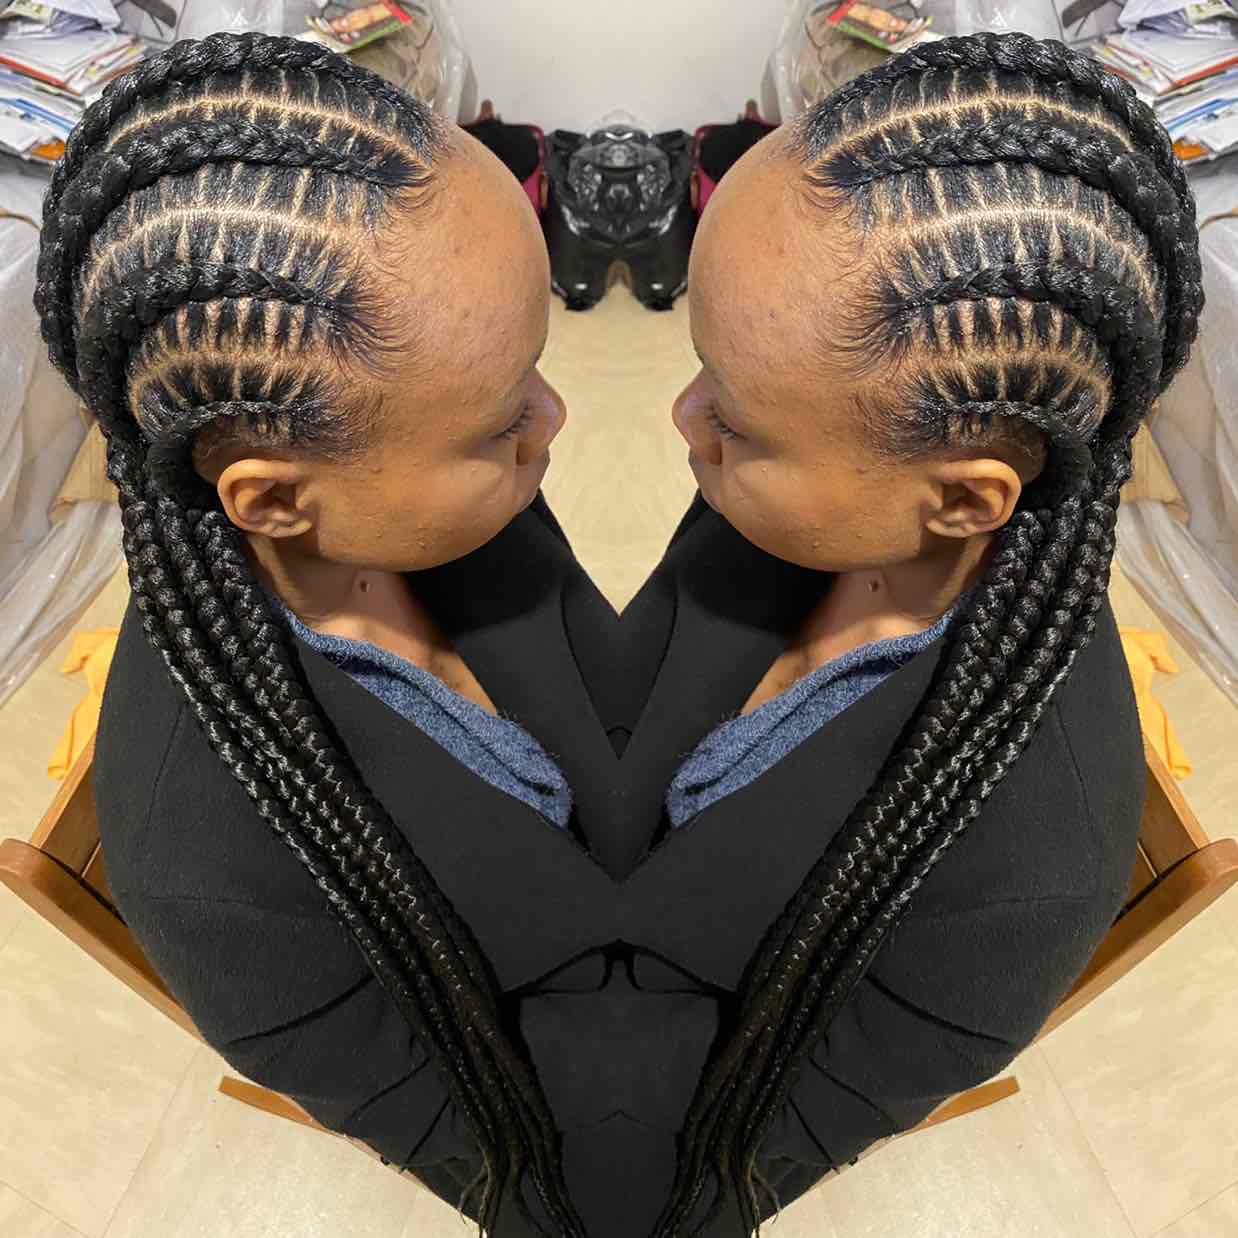 salon de coiffure afro tresse tresses box braids crochet braids vanilles tissages paris 75 77 78 91 92 93 94 95 GZYKKBEW